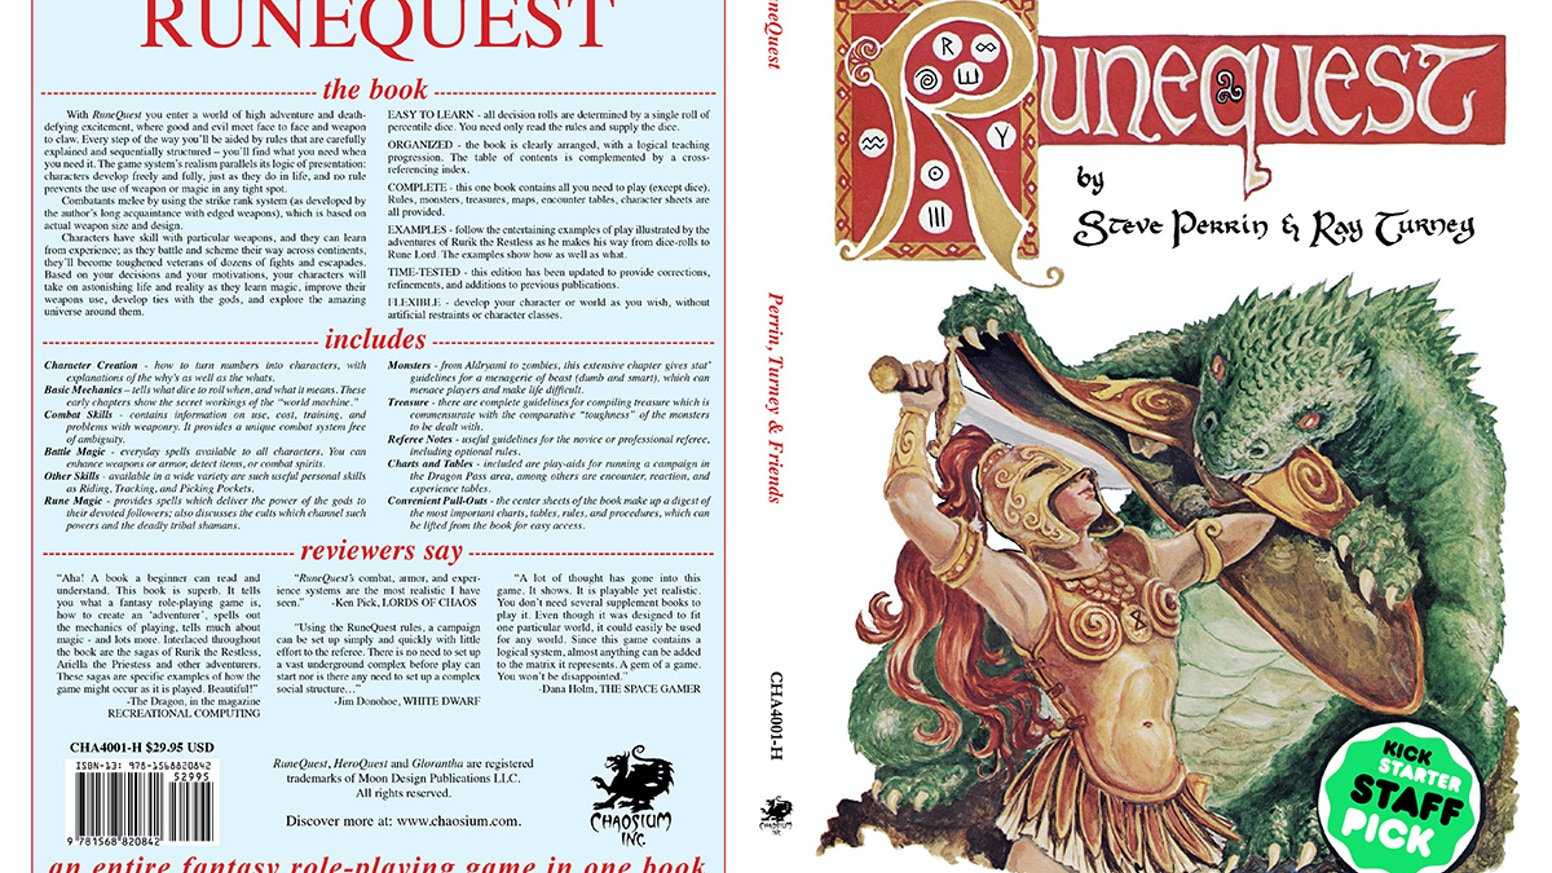 Bringing the iconic RuneQuest 2nd edition rulebook back into print to kick-off the 50th Anniversary of Glorantha celebrations in 2016.